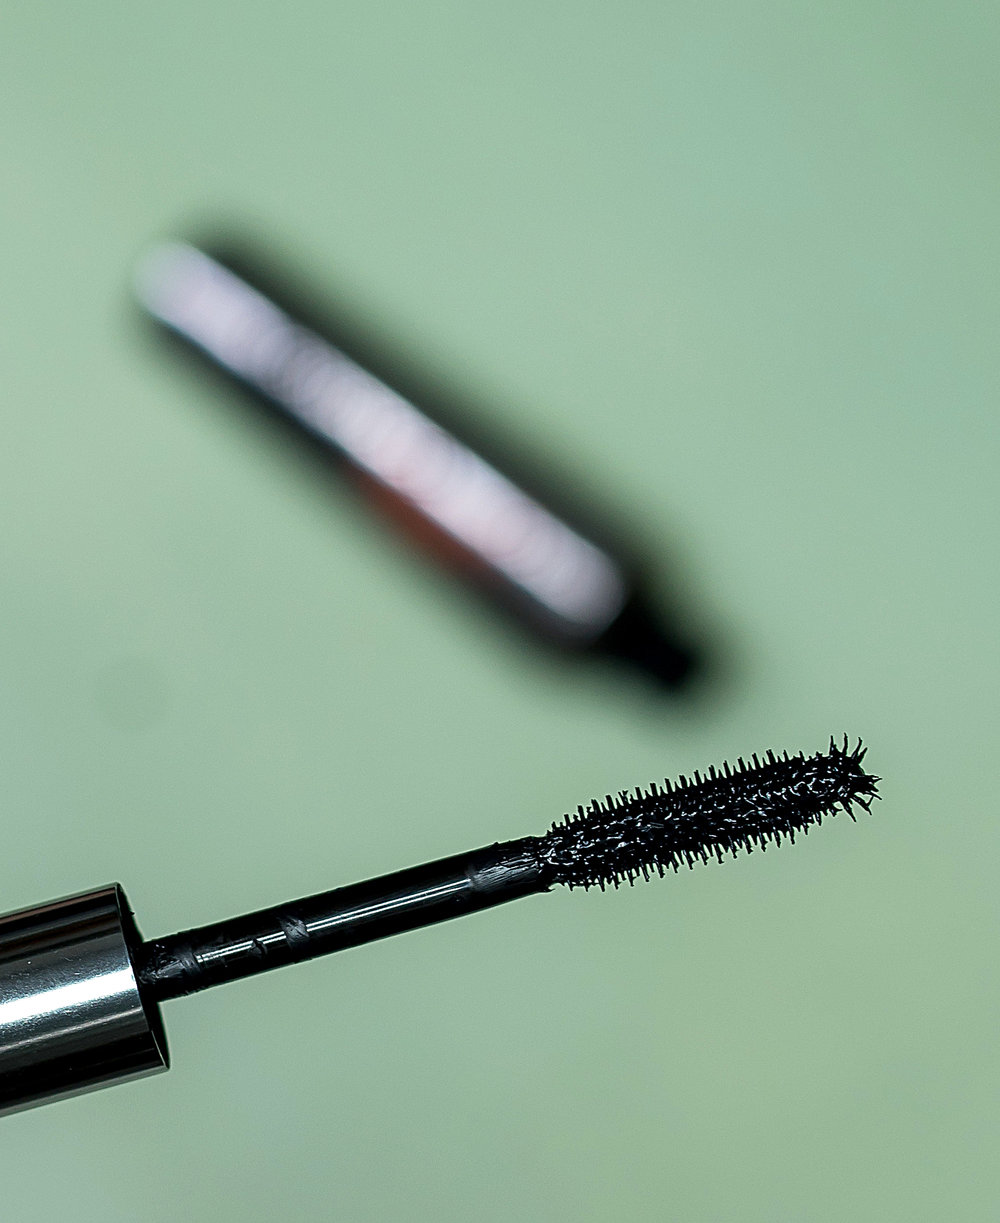 Maggie a la Mode - They're Real! Mascara Brush and Bristles by Benefit Cosmetics